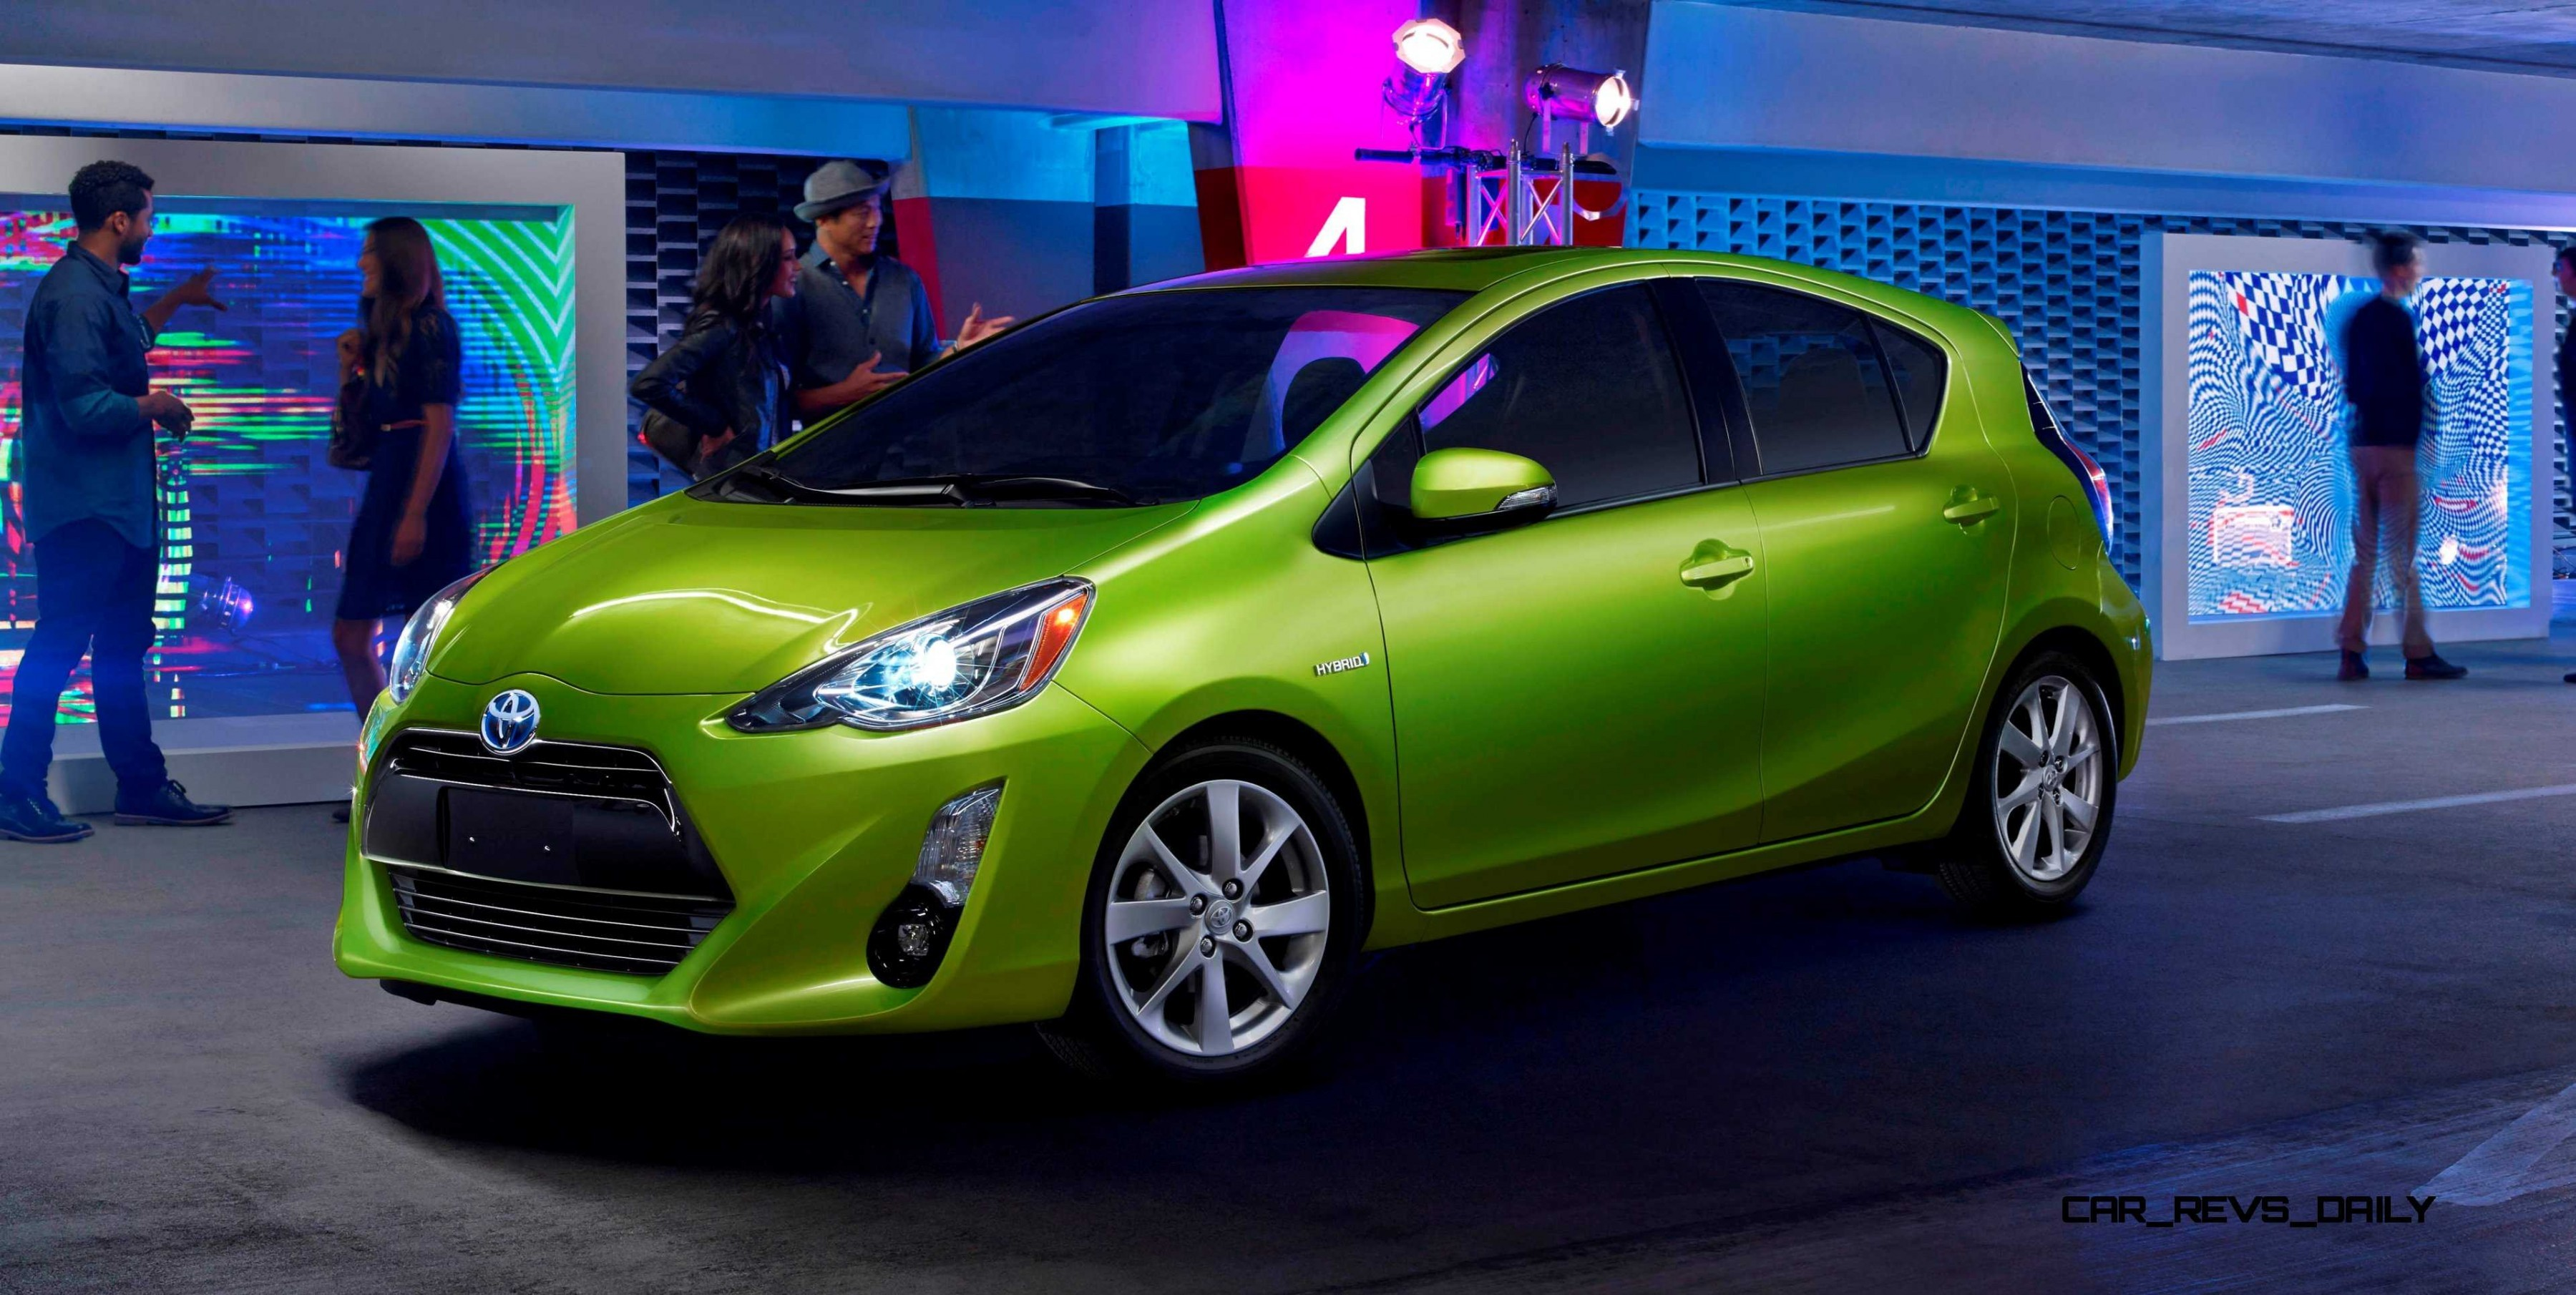 2017 Toyota Prius C Light Bright And The Highest City Fuel Economy Of Any Vehicle Without A Plug